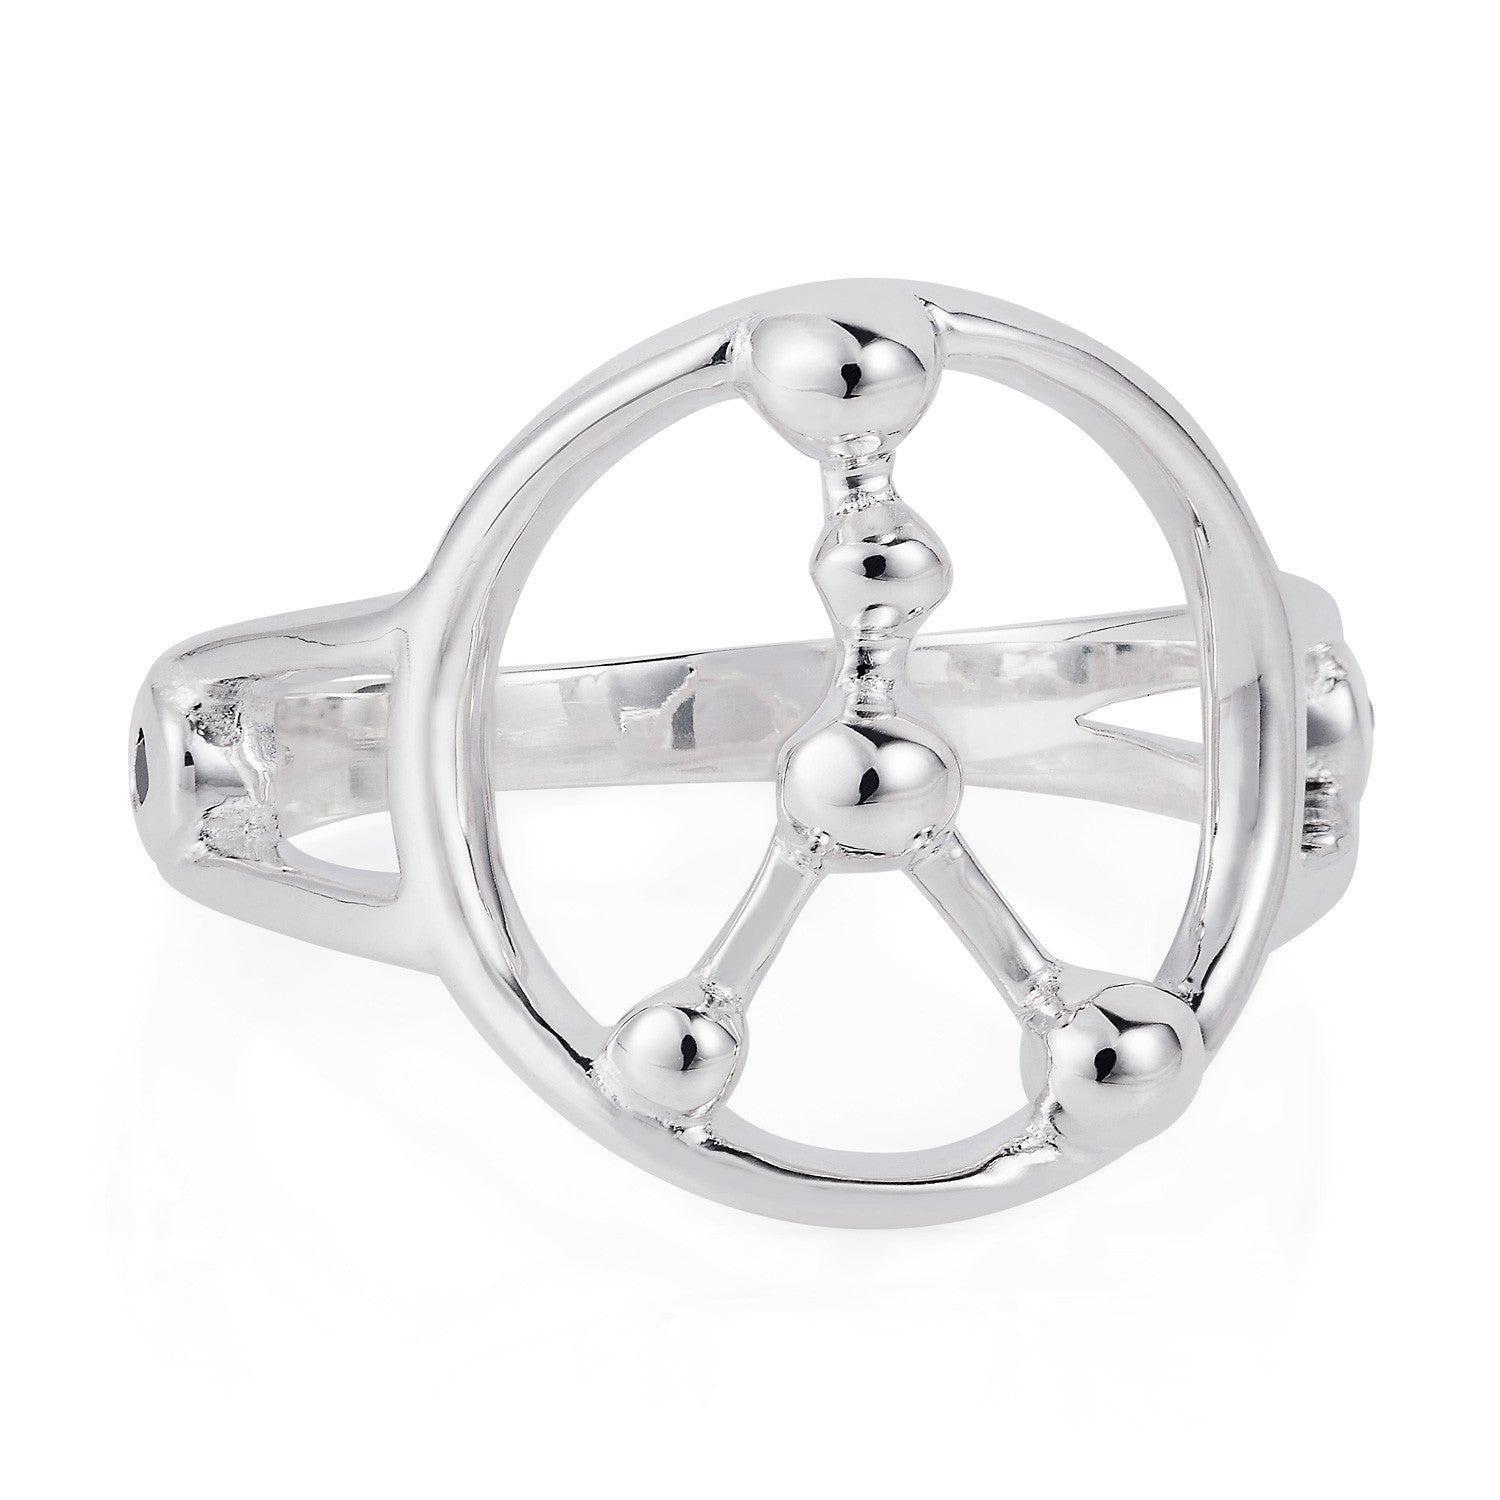 Cancer star sign astrology Ring